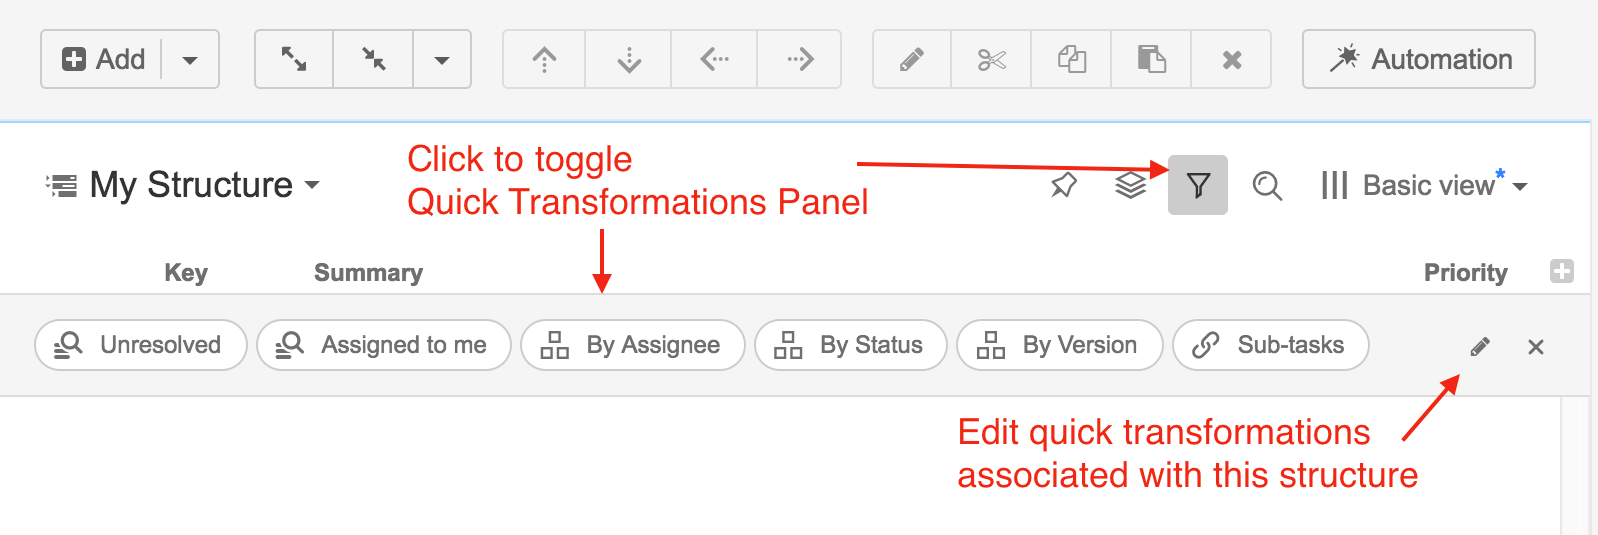 Quick Transformations - Structure Plugin for JIRA - Version